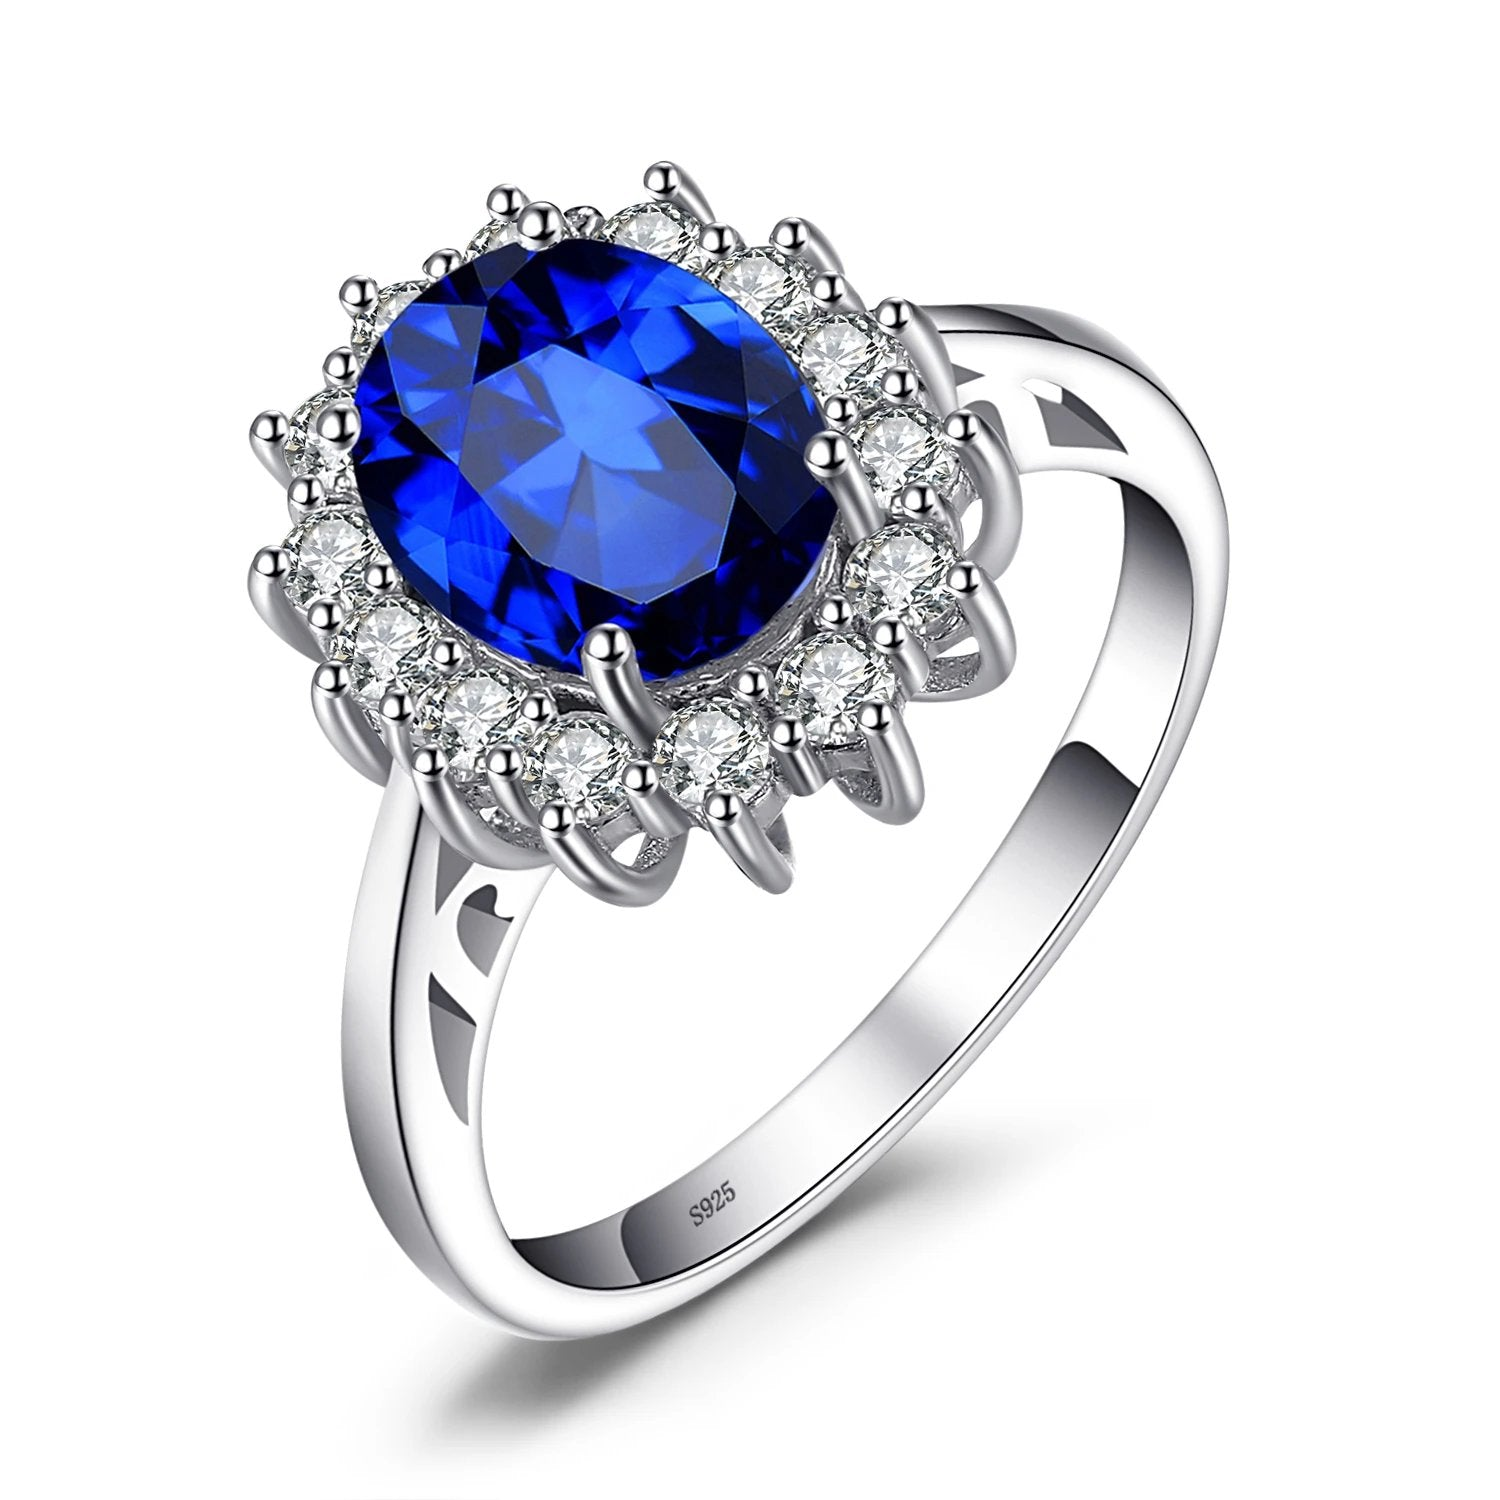 Diana Blue Sapphire Ring Princess Crown Halo Engagement Wedding Rings - RHEA LIGHT